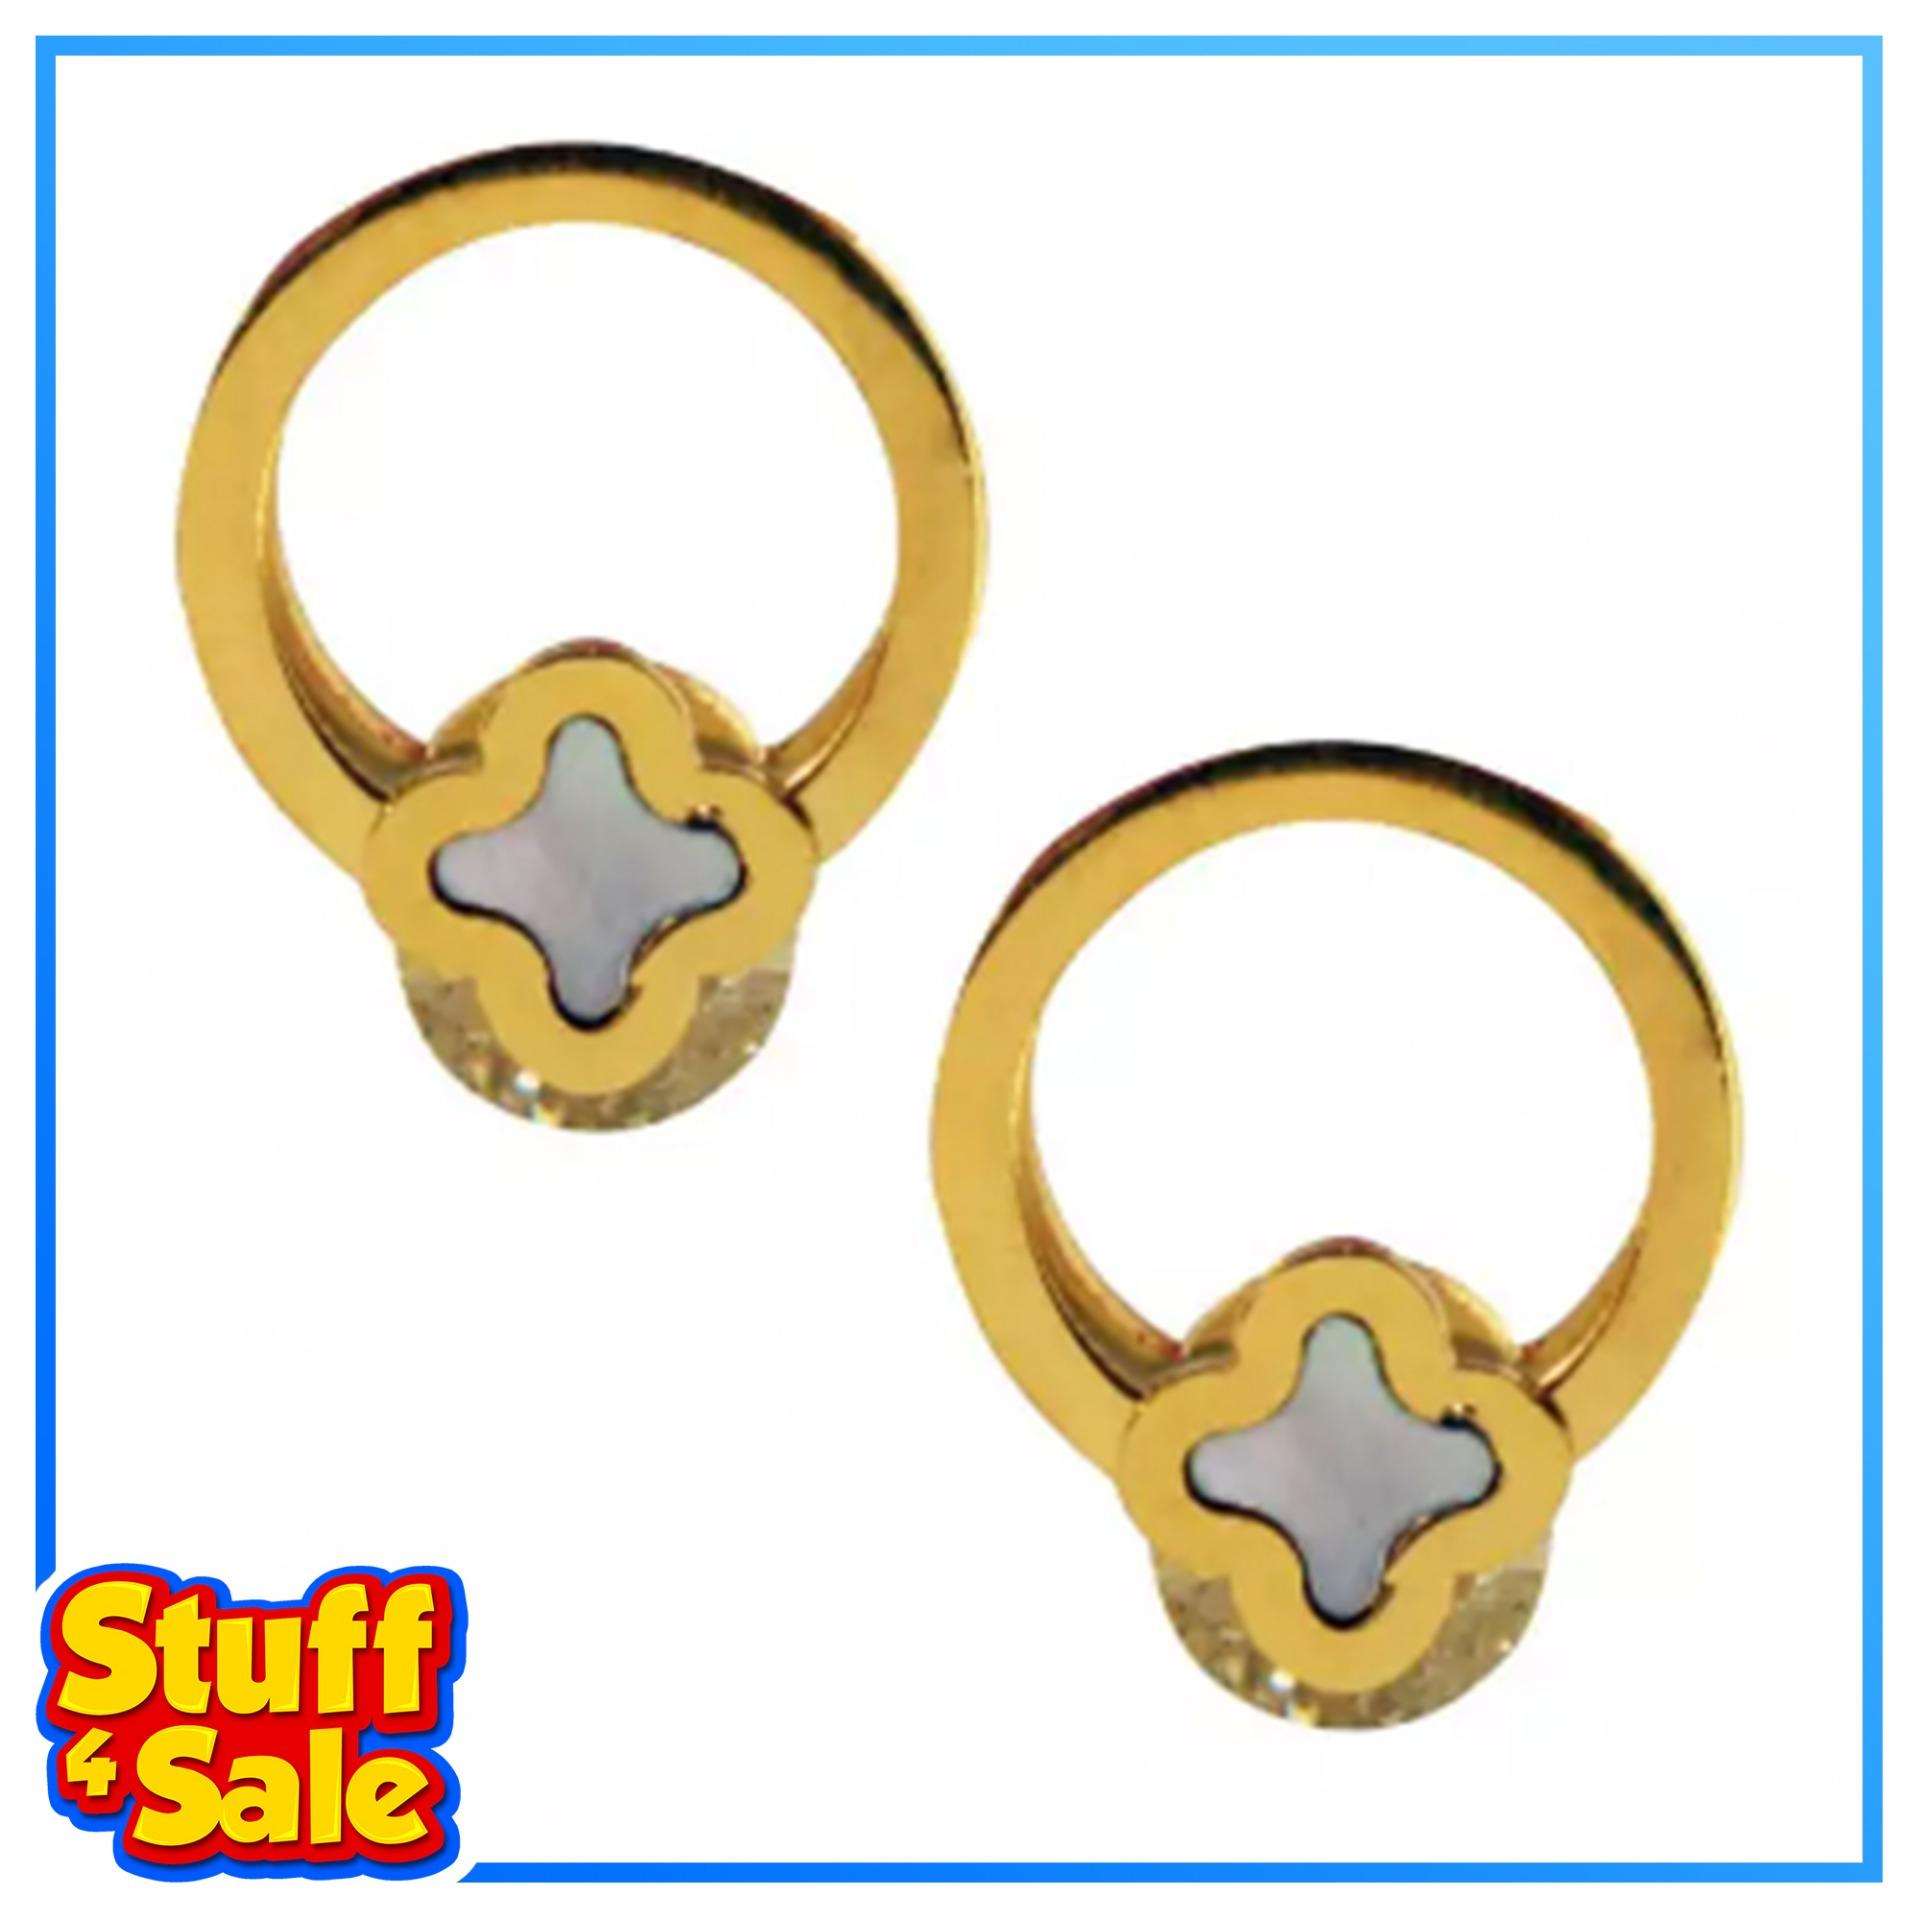 4f511bcb4 Stud Earrings for sale - Pin Earrings online brands, prices ...